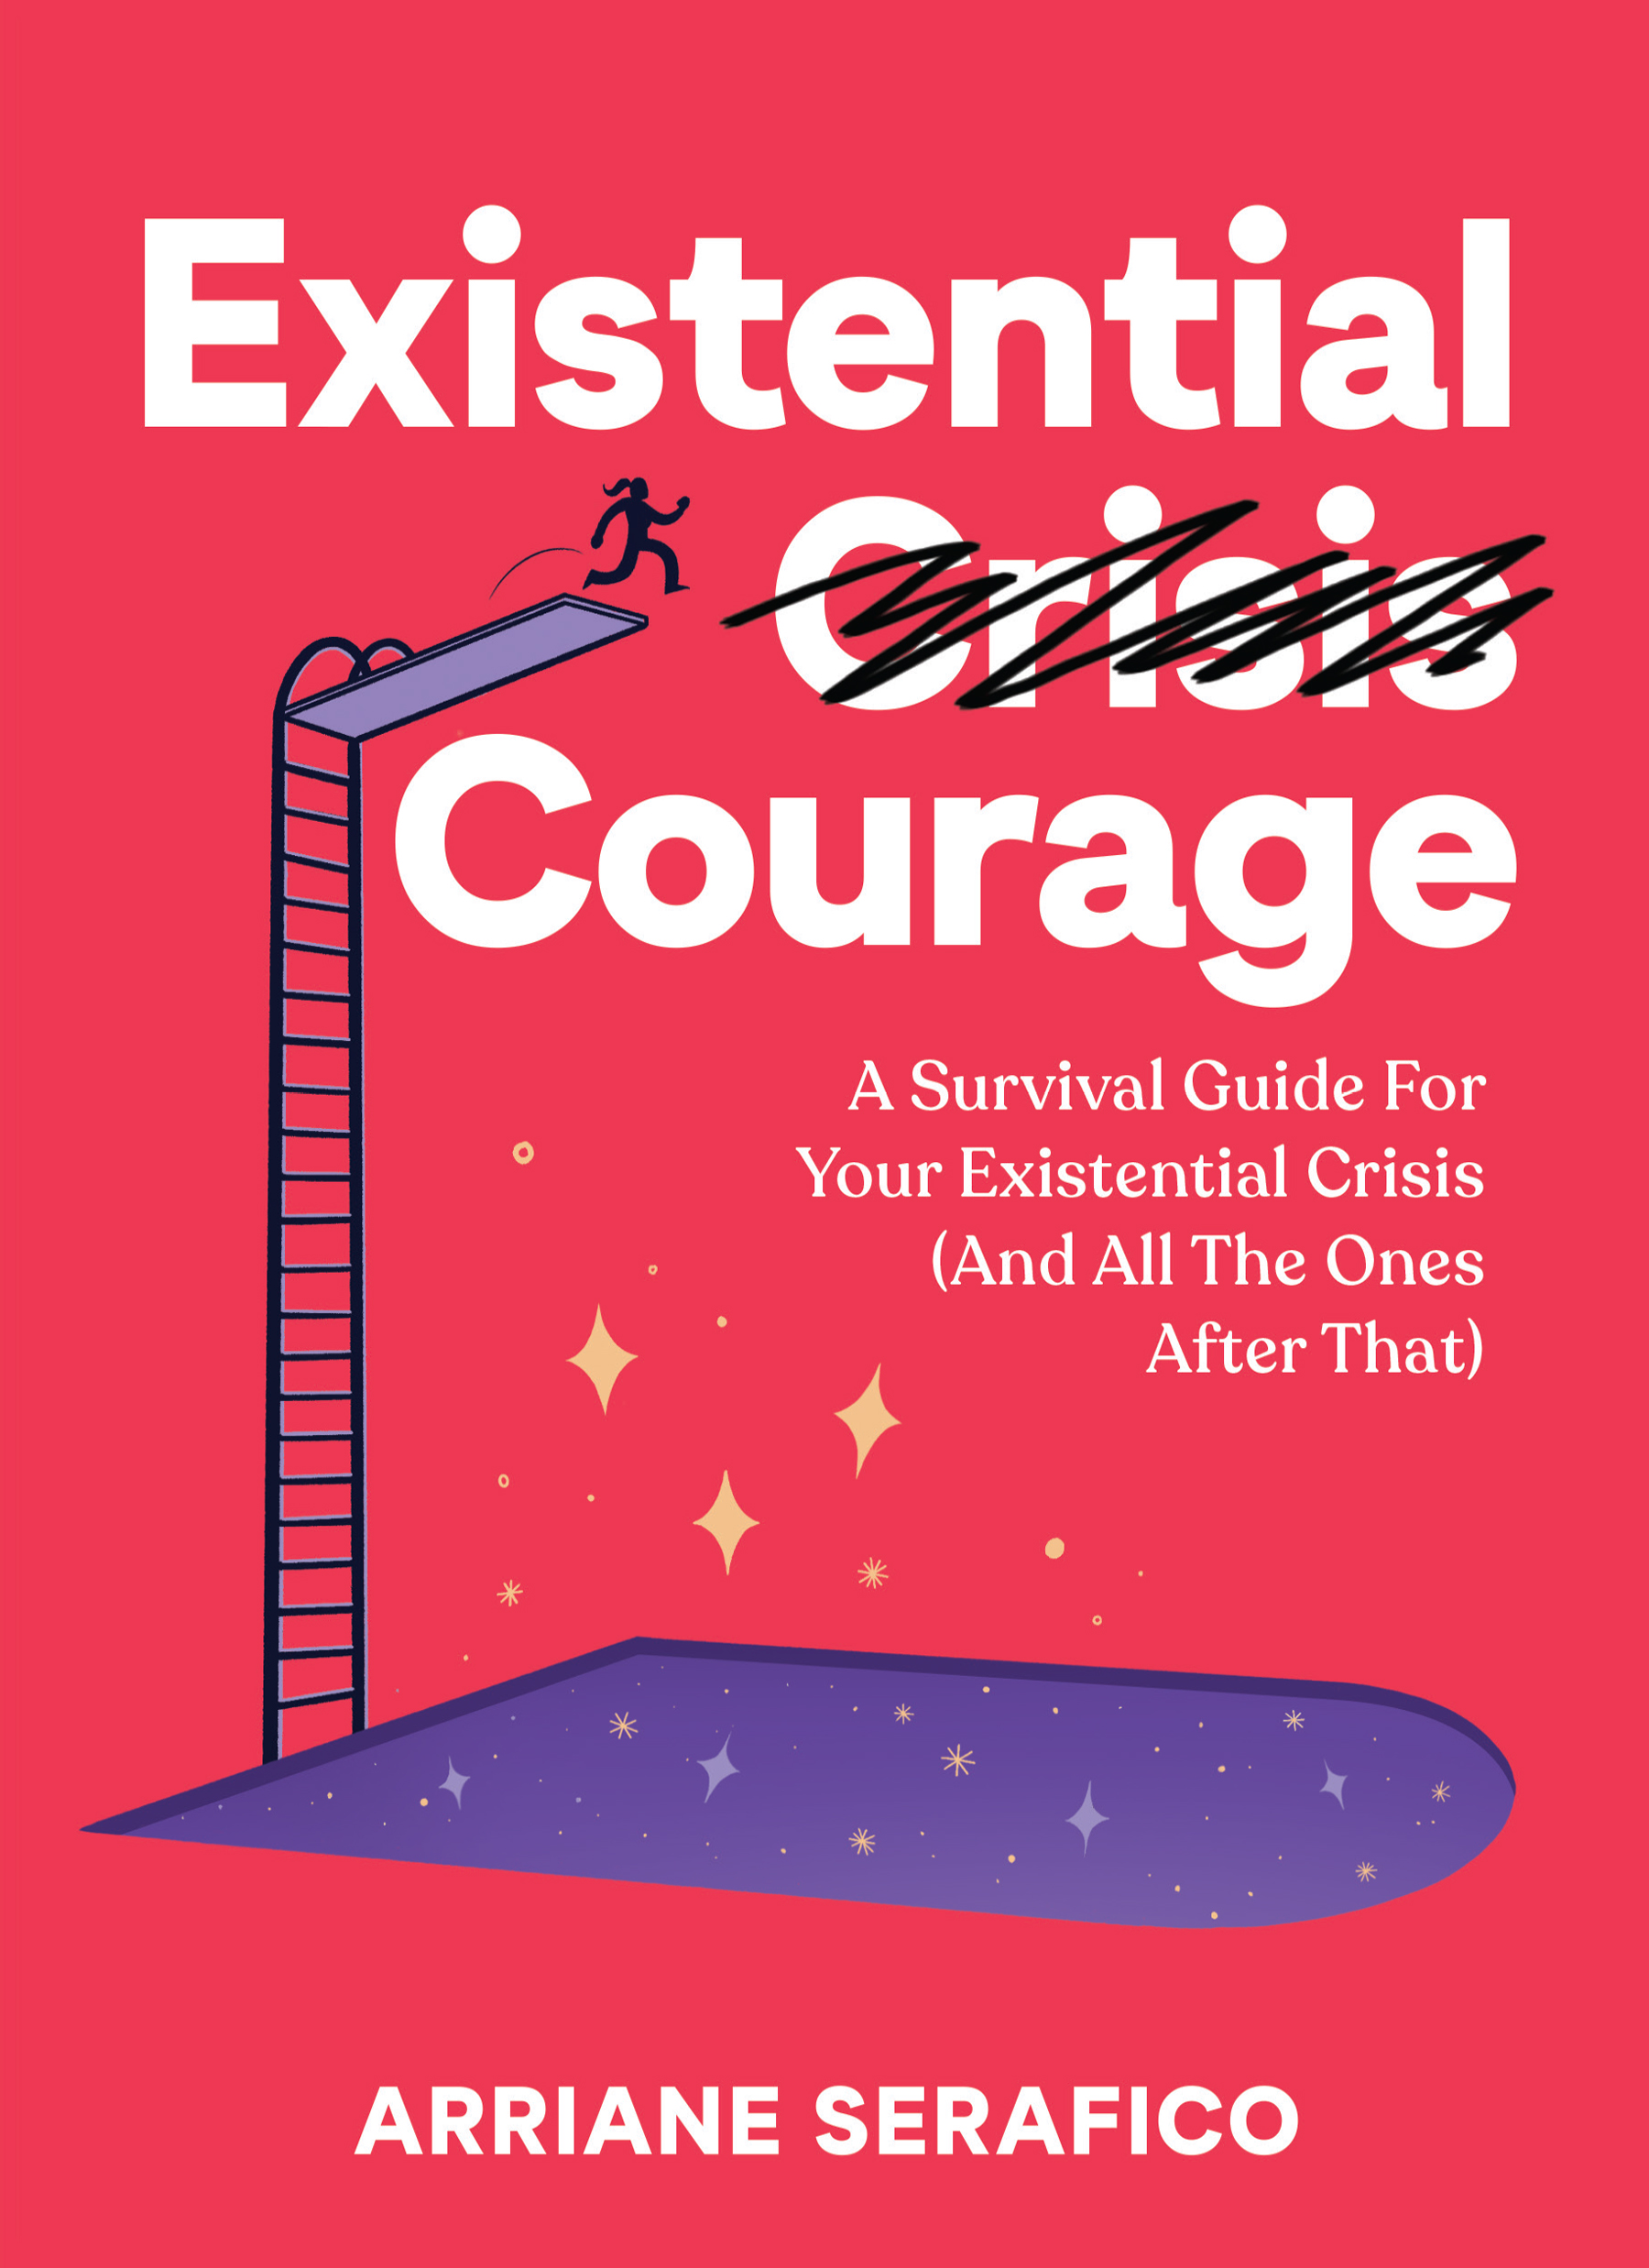 Existential Courage: A Survival Guide For Your Existential Crisis